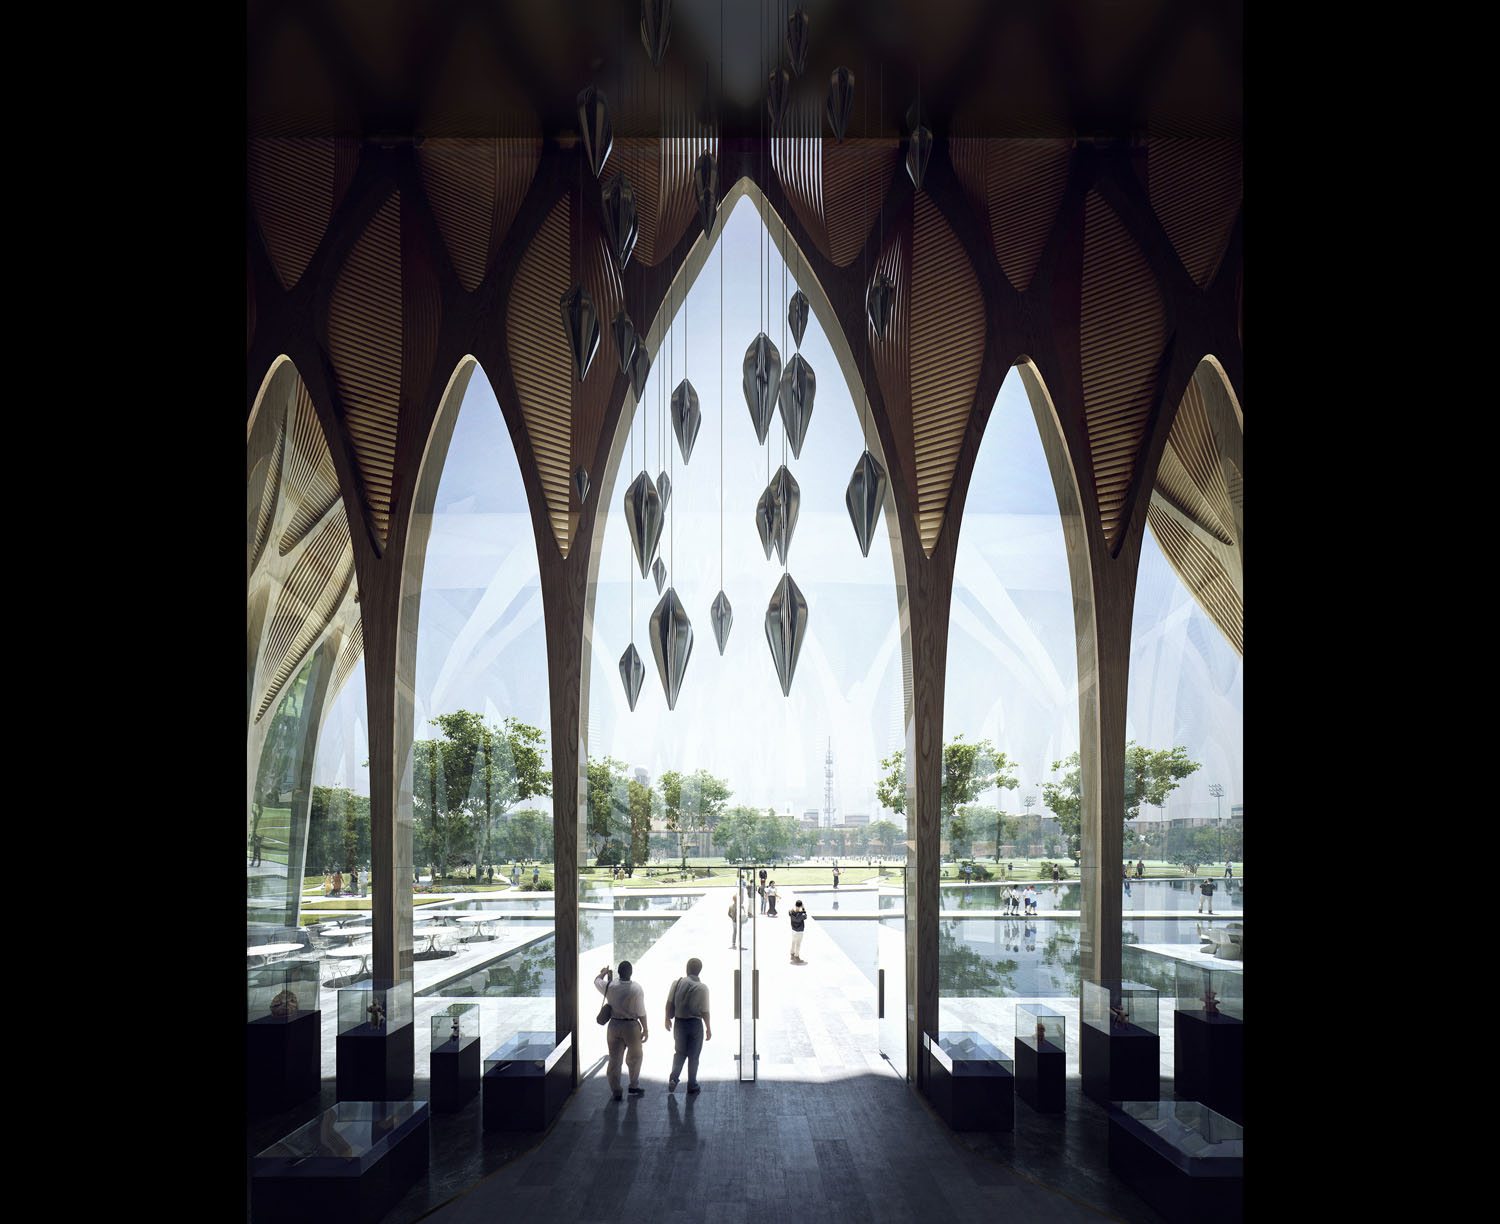 mm_Sleuk Rith Institute in Cambodia design by Zaha Hadid Architects_09